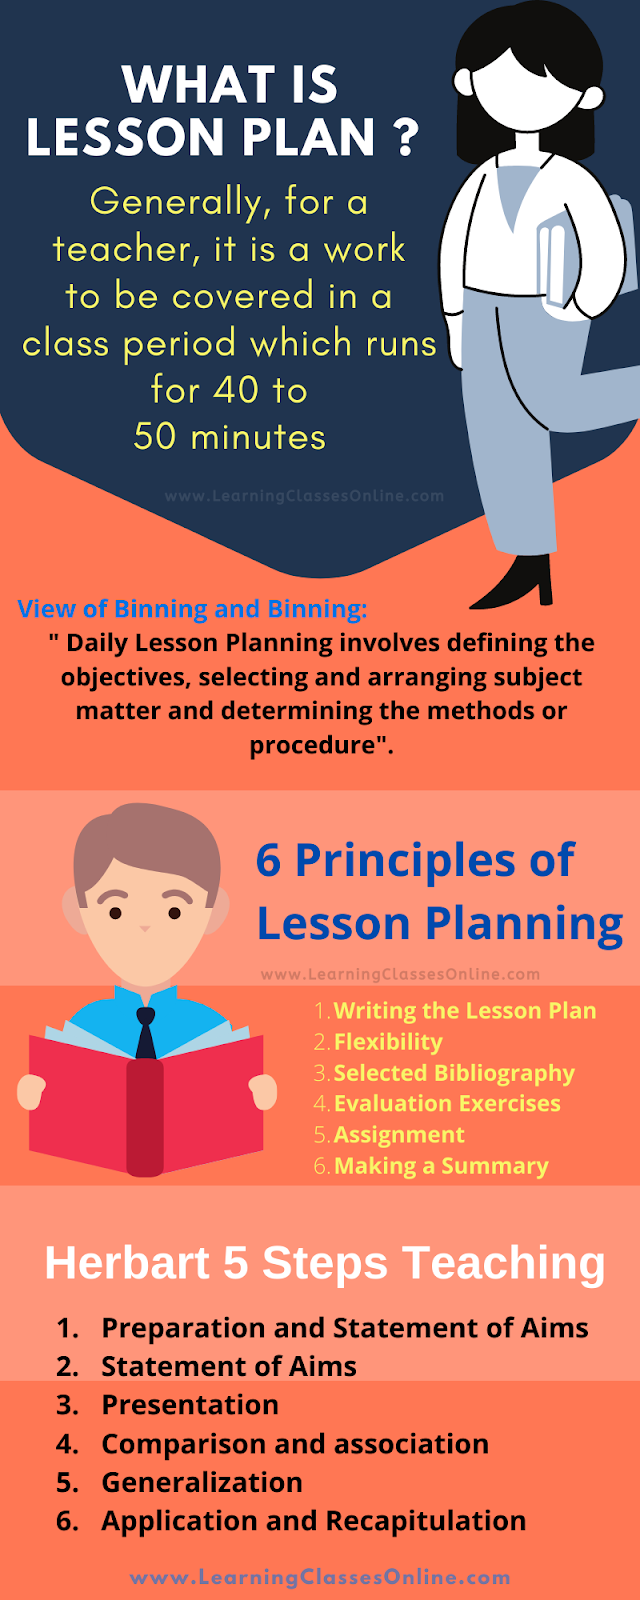 Concept of Lesson Plan, Meaning of Lesson Plan ( What is Lesson Plan ?), Definition of Lesson Plan, How to Plan a Lesson?, Components of a Lesson Plan, Importance of Lesson Plan, Functions and Purpose of  Lesson Planning, What are the main principles, characteristics, and pre-requisites of Lesson Planning?, Characteristics of a Good or Ideal Lesson Plan, Basic Principles of Lesson Planning, Steps of Lesson Plan, Here are the Herbart 5 Steps on How to write a lesson Plan, Merits or Advantages of Herbartian Steps of Lesson Plan, Demerits or Disadvantages of Herbartian Five steps of teaching, Decisions Involved in Planning Lessons, How to Present Lesson Plan?, How to Write a Lesson Plan, 8 Steps of writing and making a lesson plan, Five Pillars of Effective lesson Planning, Types of Lesson Plan, Lesson Plan Videos, Lesson Plan PPT, Lesson Plan Format, Lesson Plan Template, Lesson Plan Examples ( Lesson PlanBook),